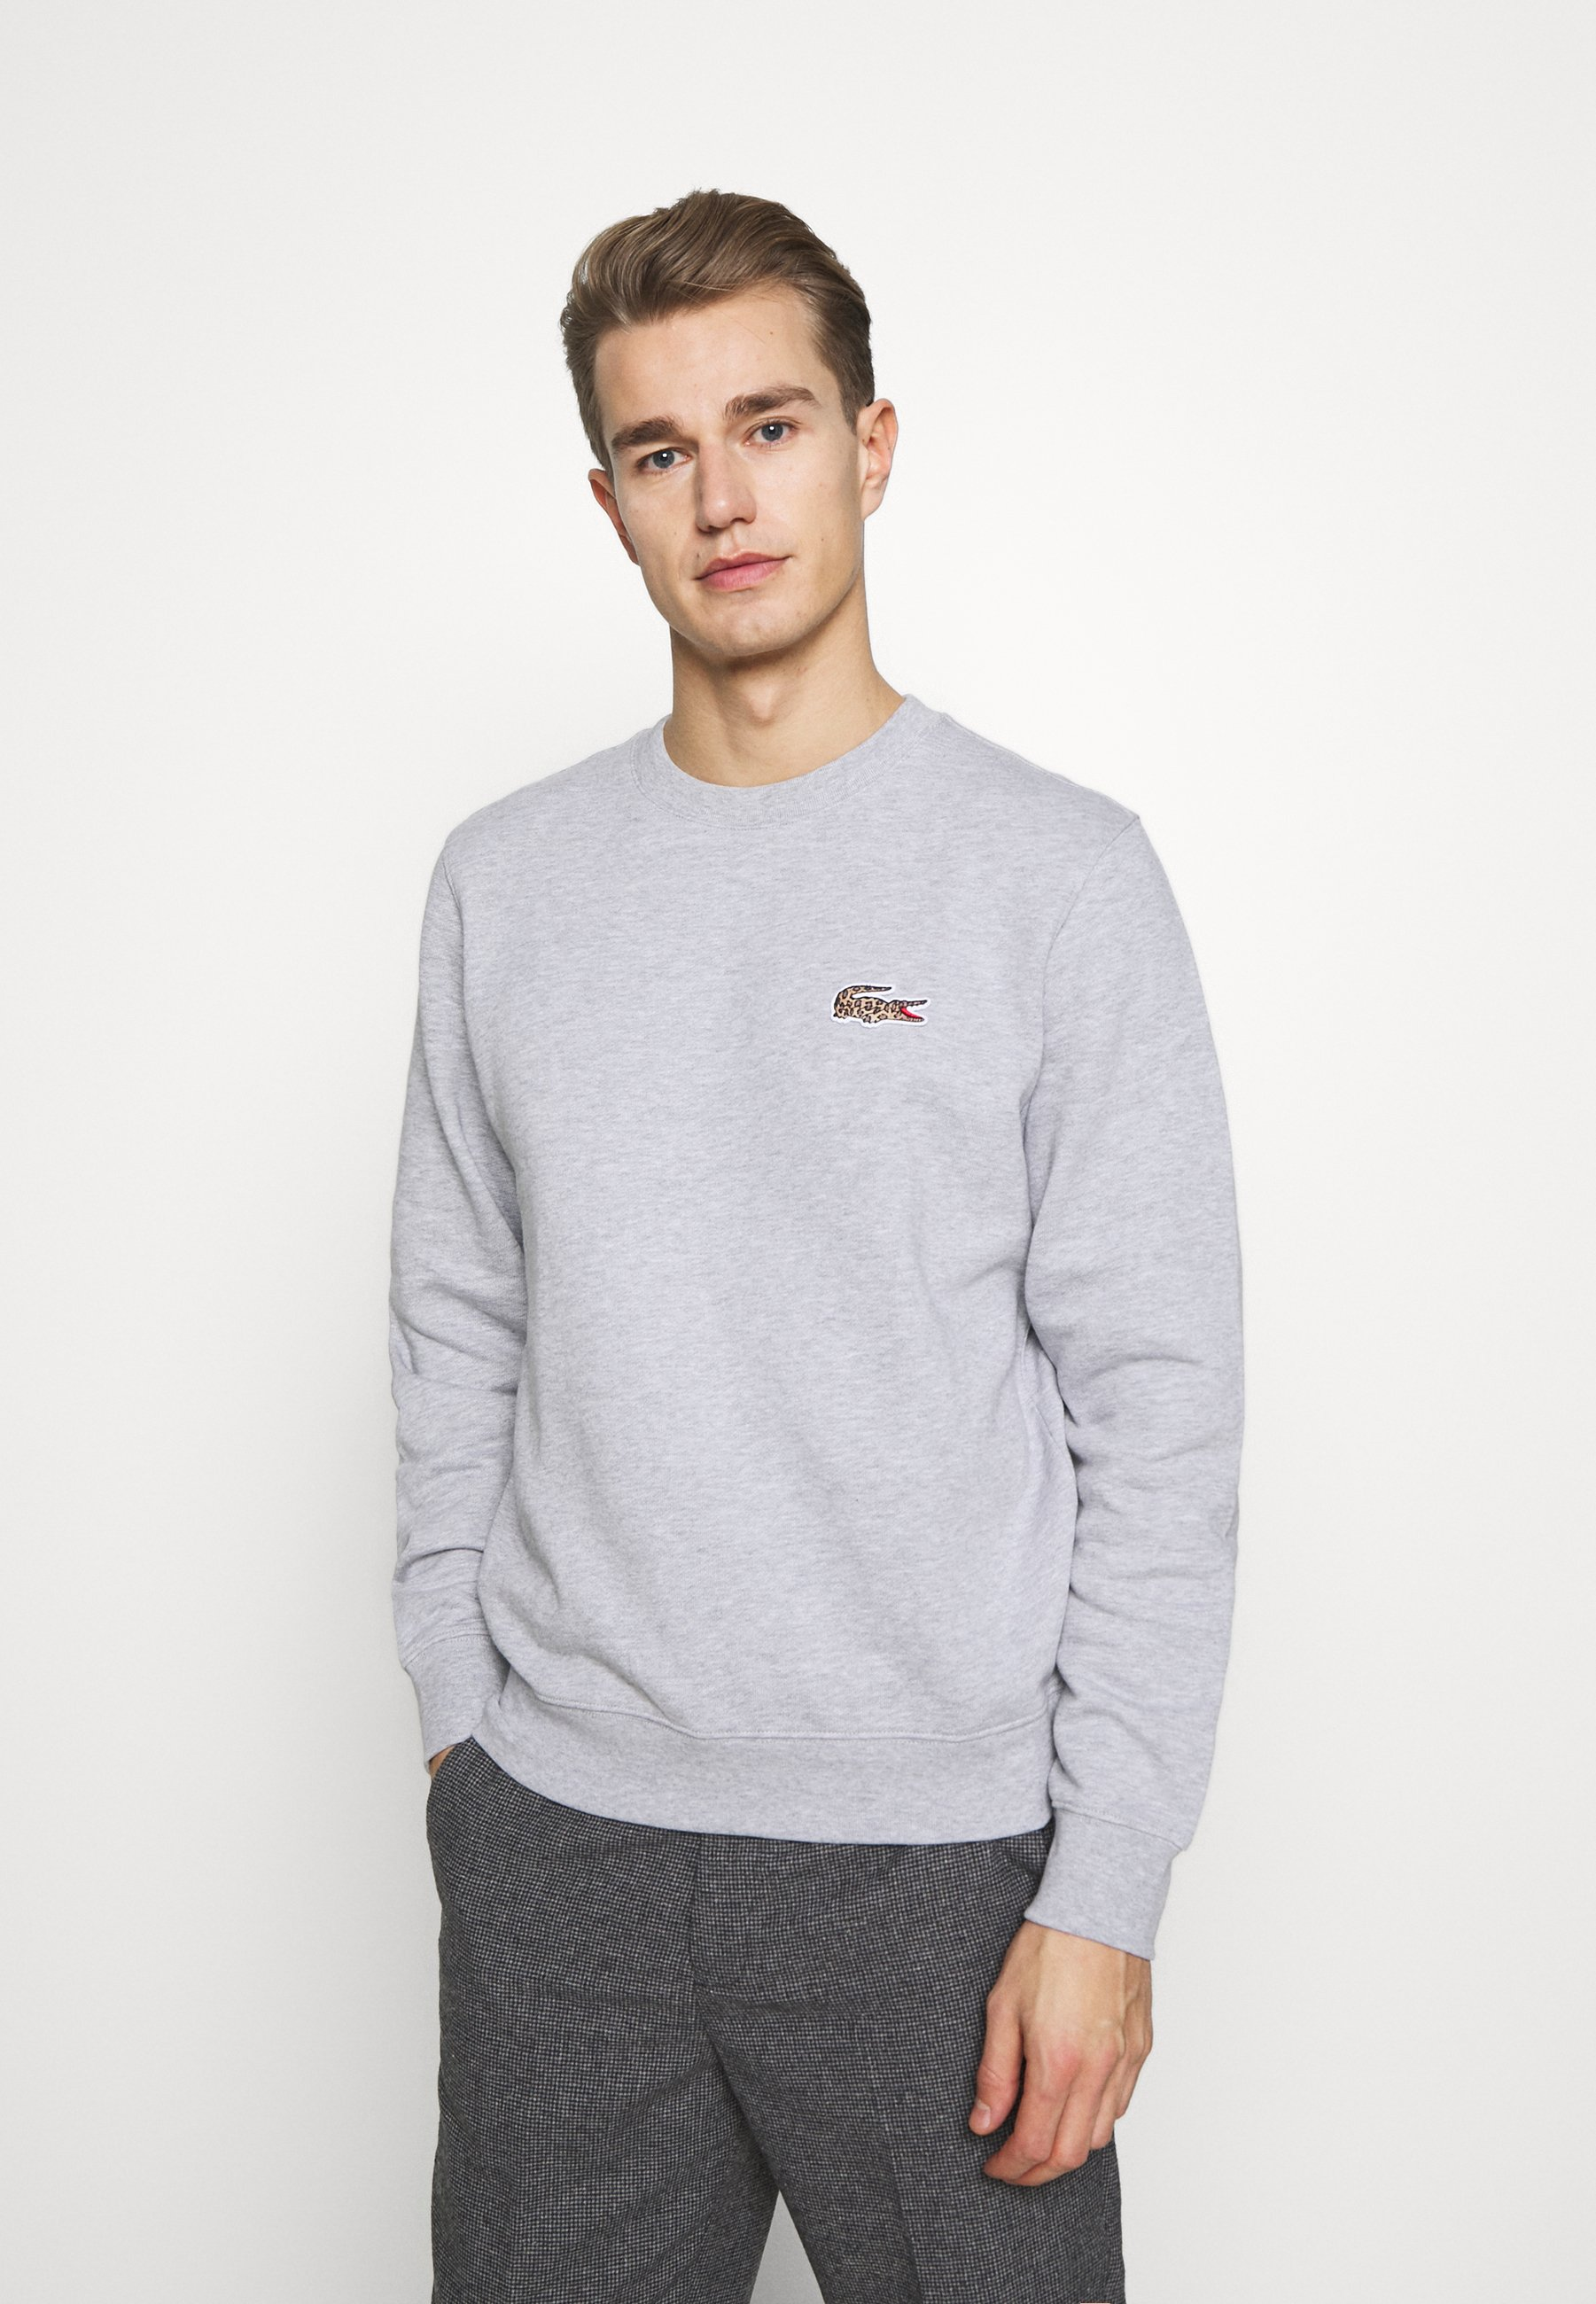 Homme LACOSTE X NATIONAL GEOGRAPHIC - Sweatshirt